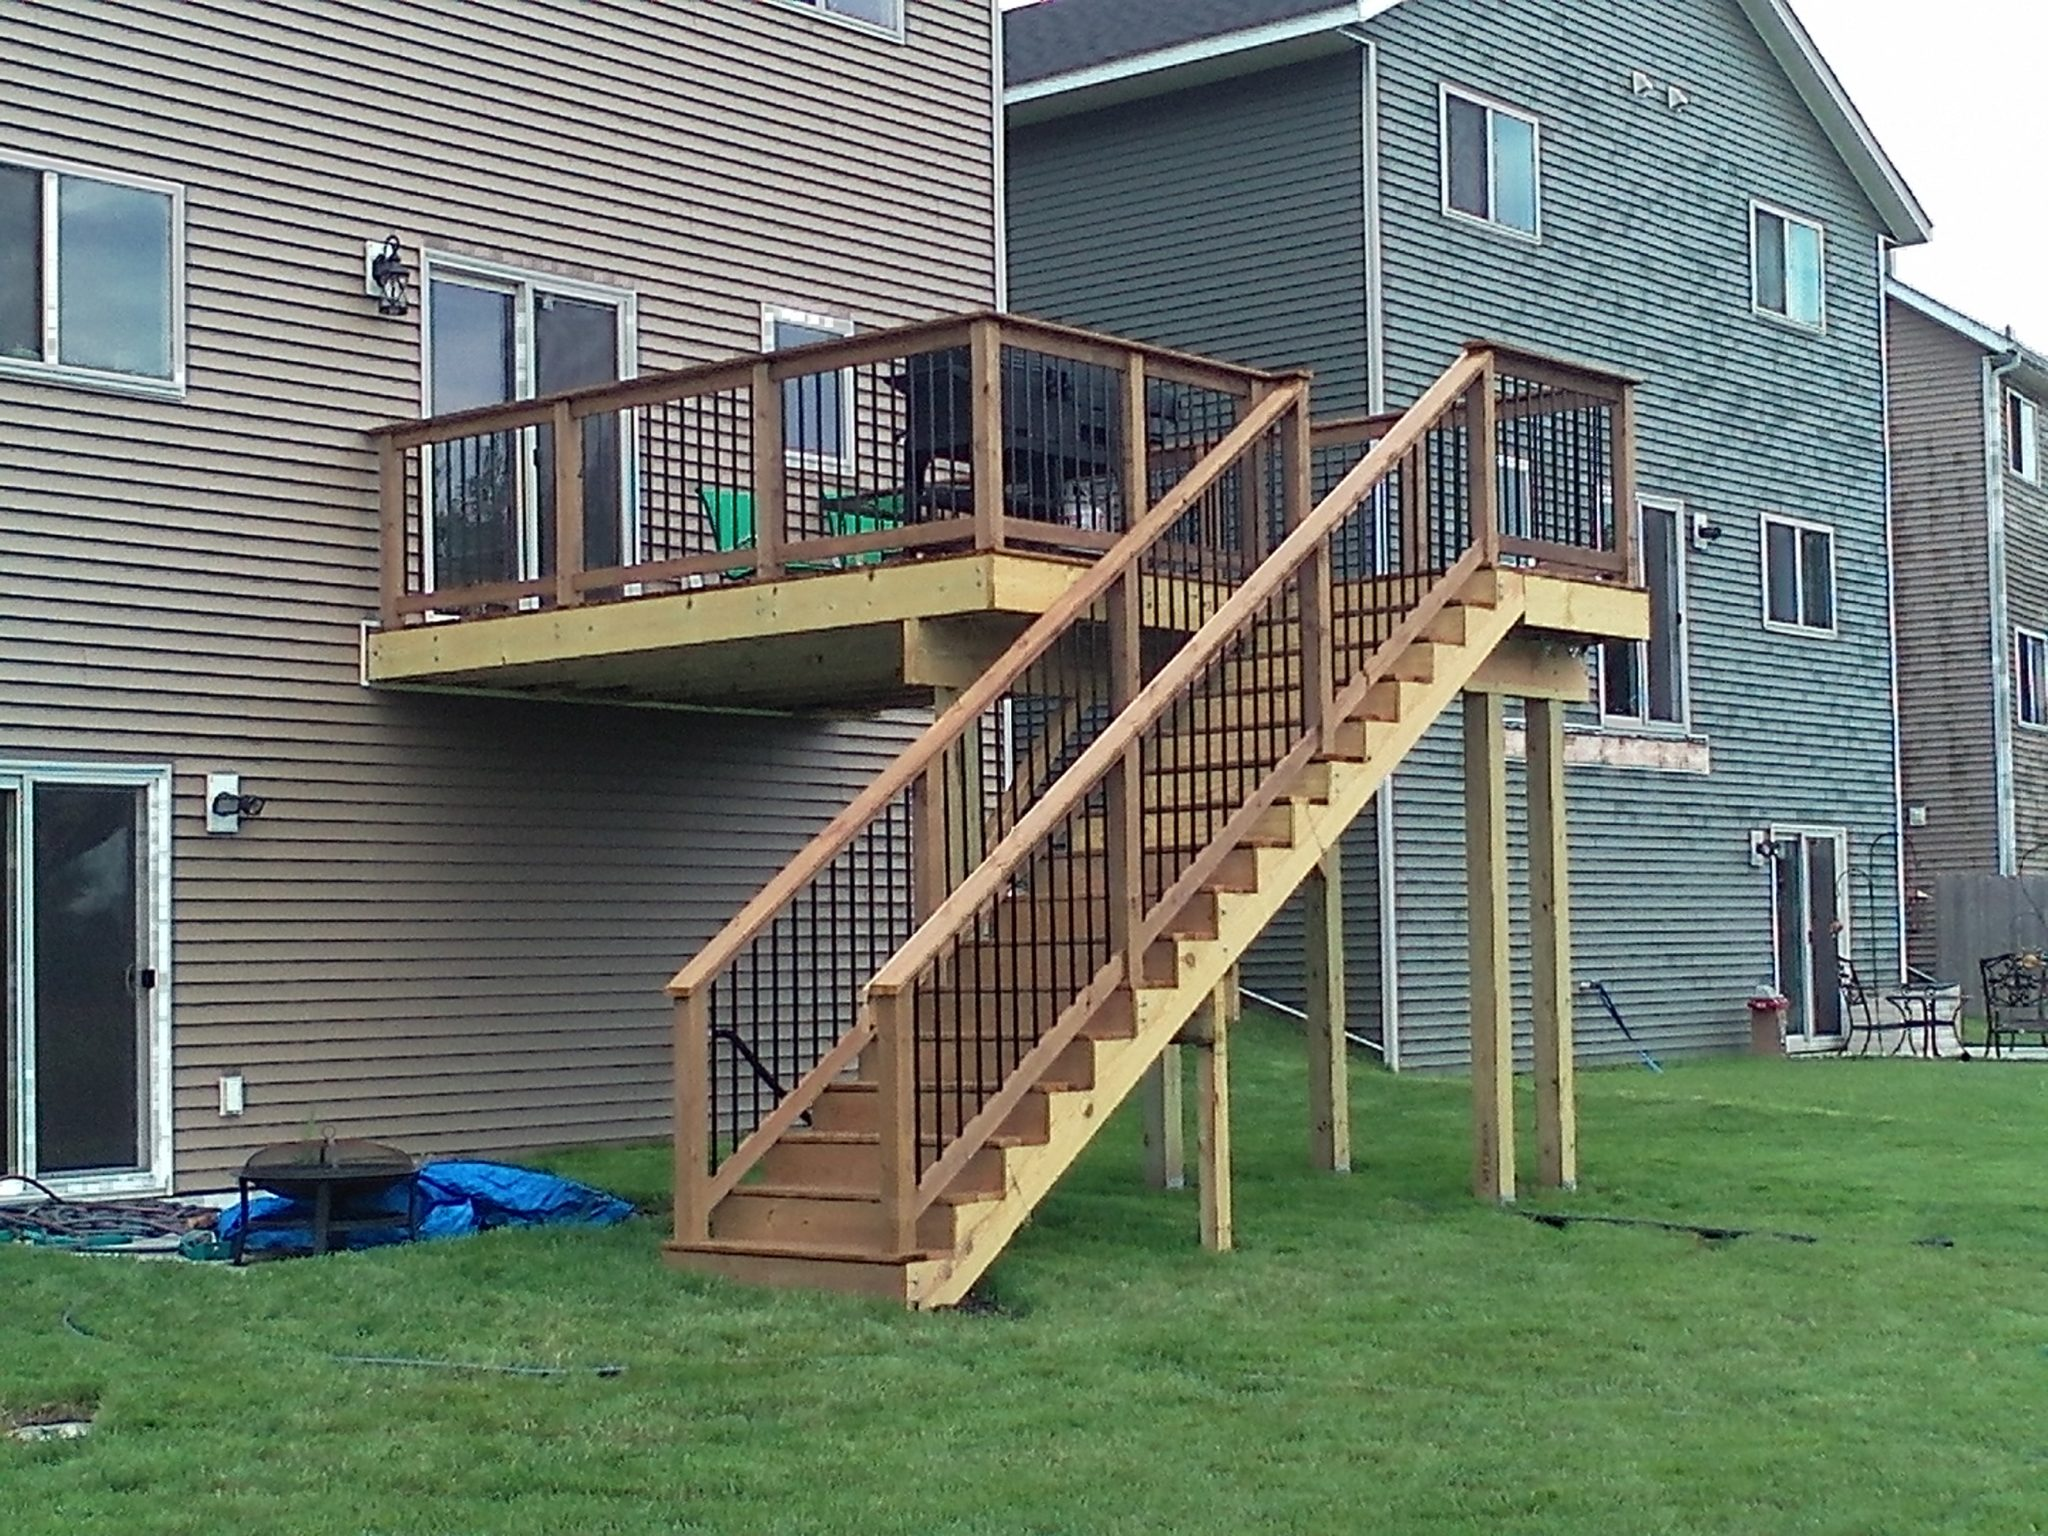 mankato-deck-and-railing-113440